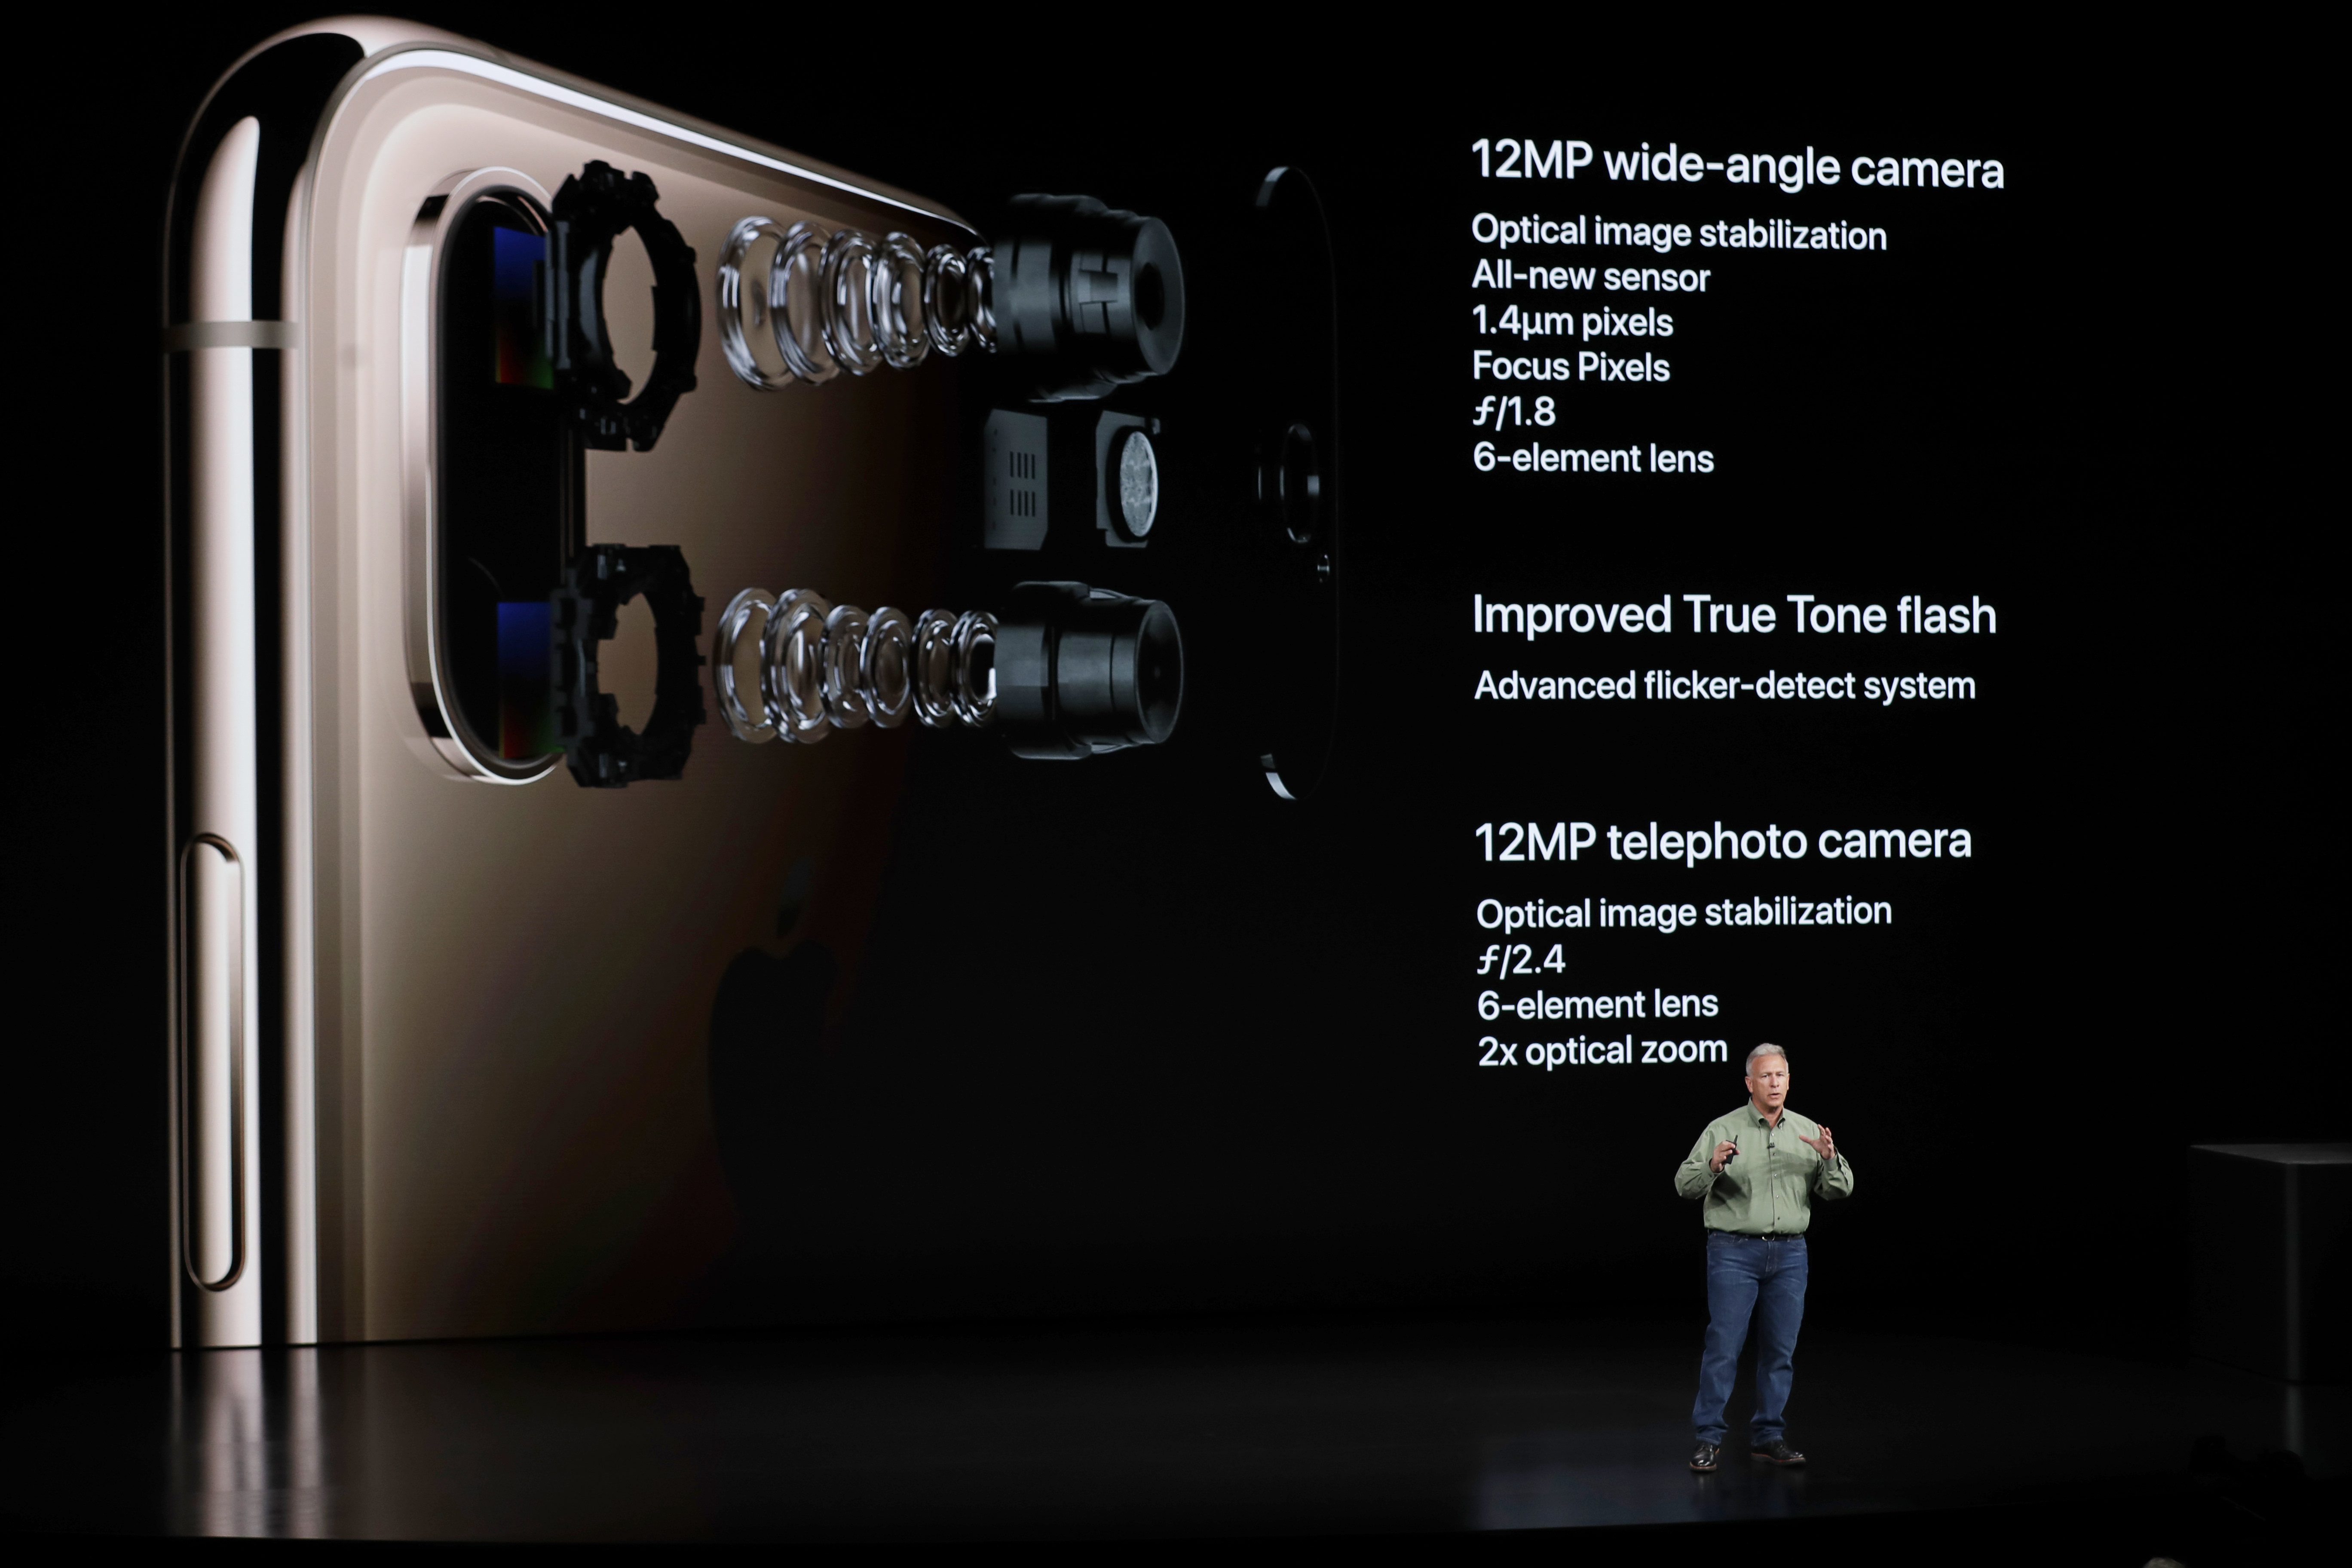 <div class='meta'><div class='origin-logo' data-origin='none'></div><span class='caption-text' data-credit='AP Photo/Marcio Jose Sanchez'>Phil Schiller speaks about the camera on the Apple iPhone XS during an event to announce new Apple products Wednesday, Sept. 12, 2018, in Cupertino, Calif.</span></div>